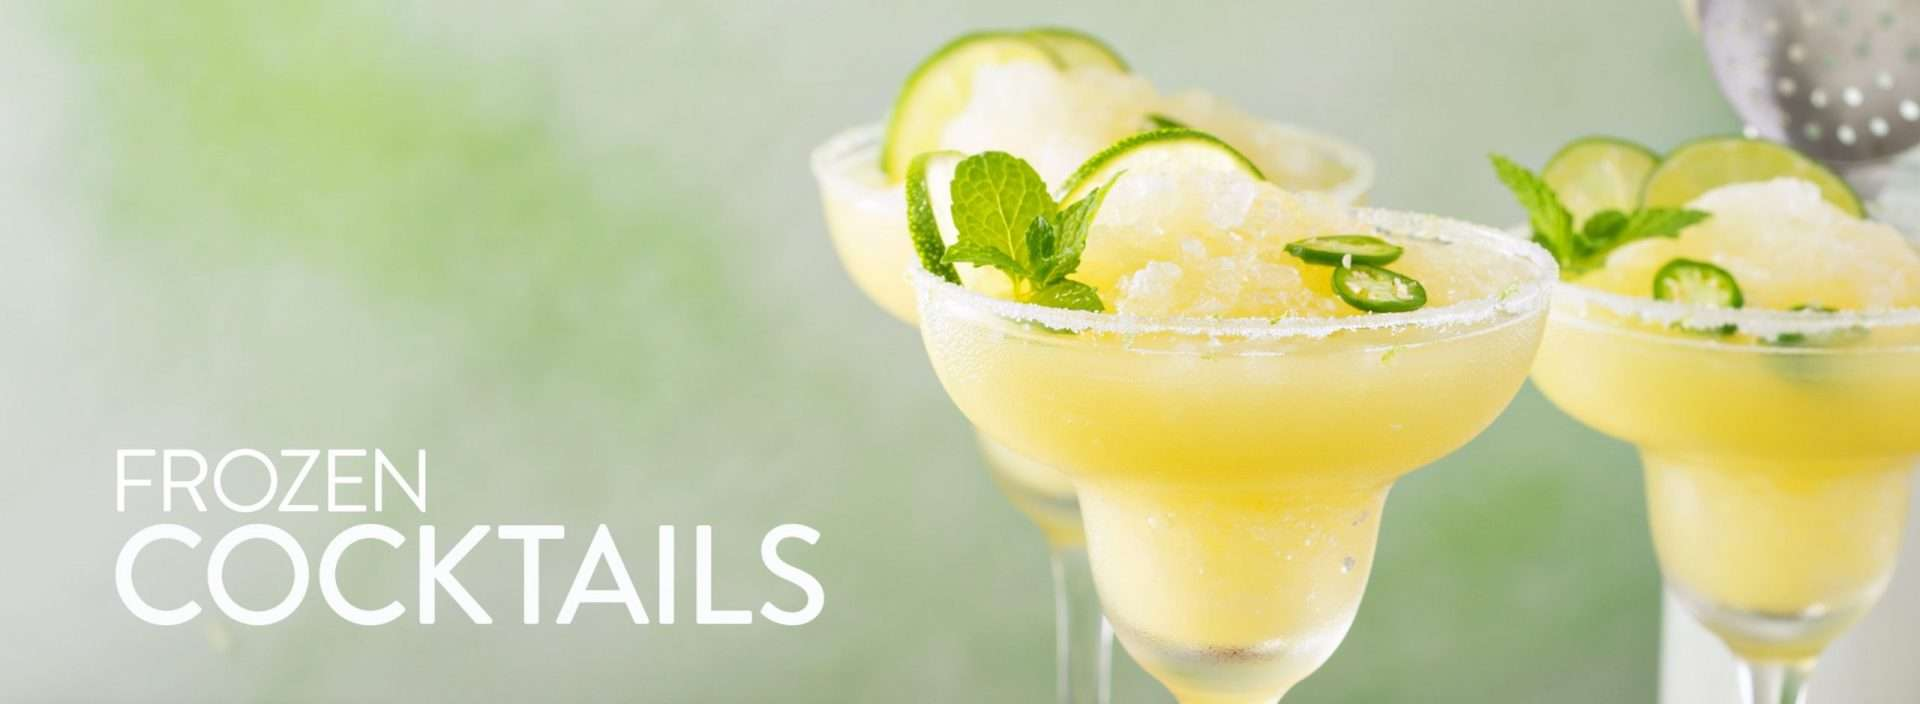 margaritas with text frozen cocktails